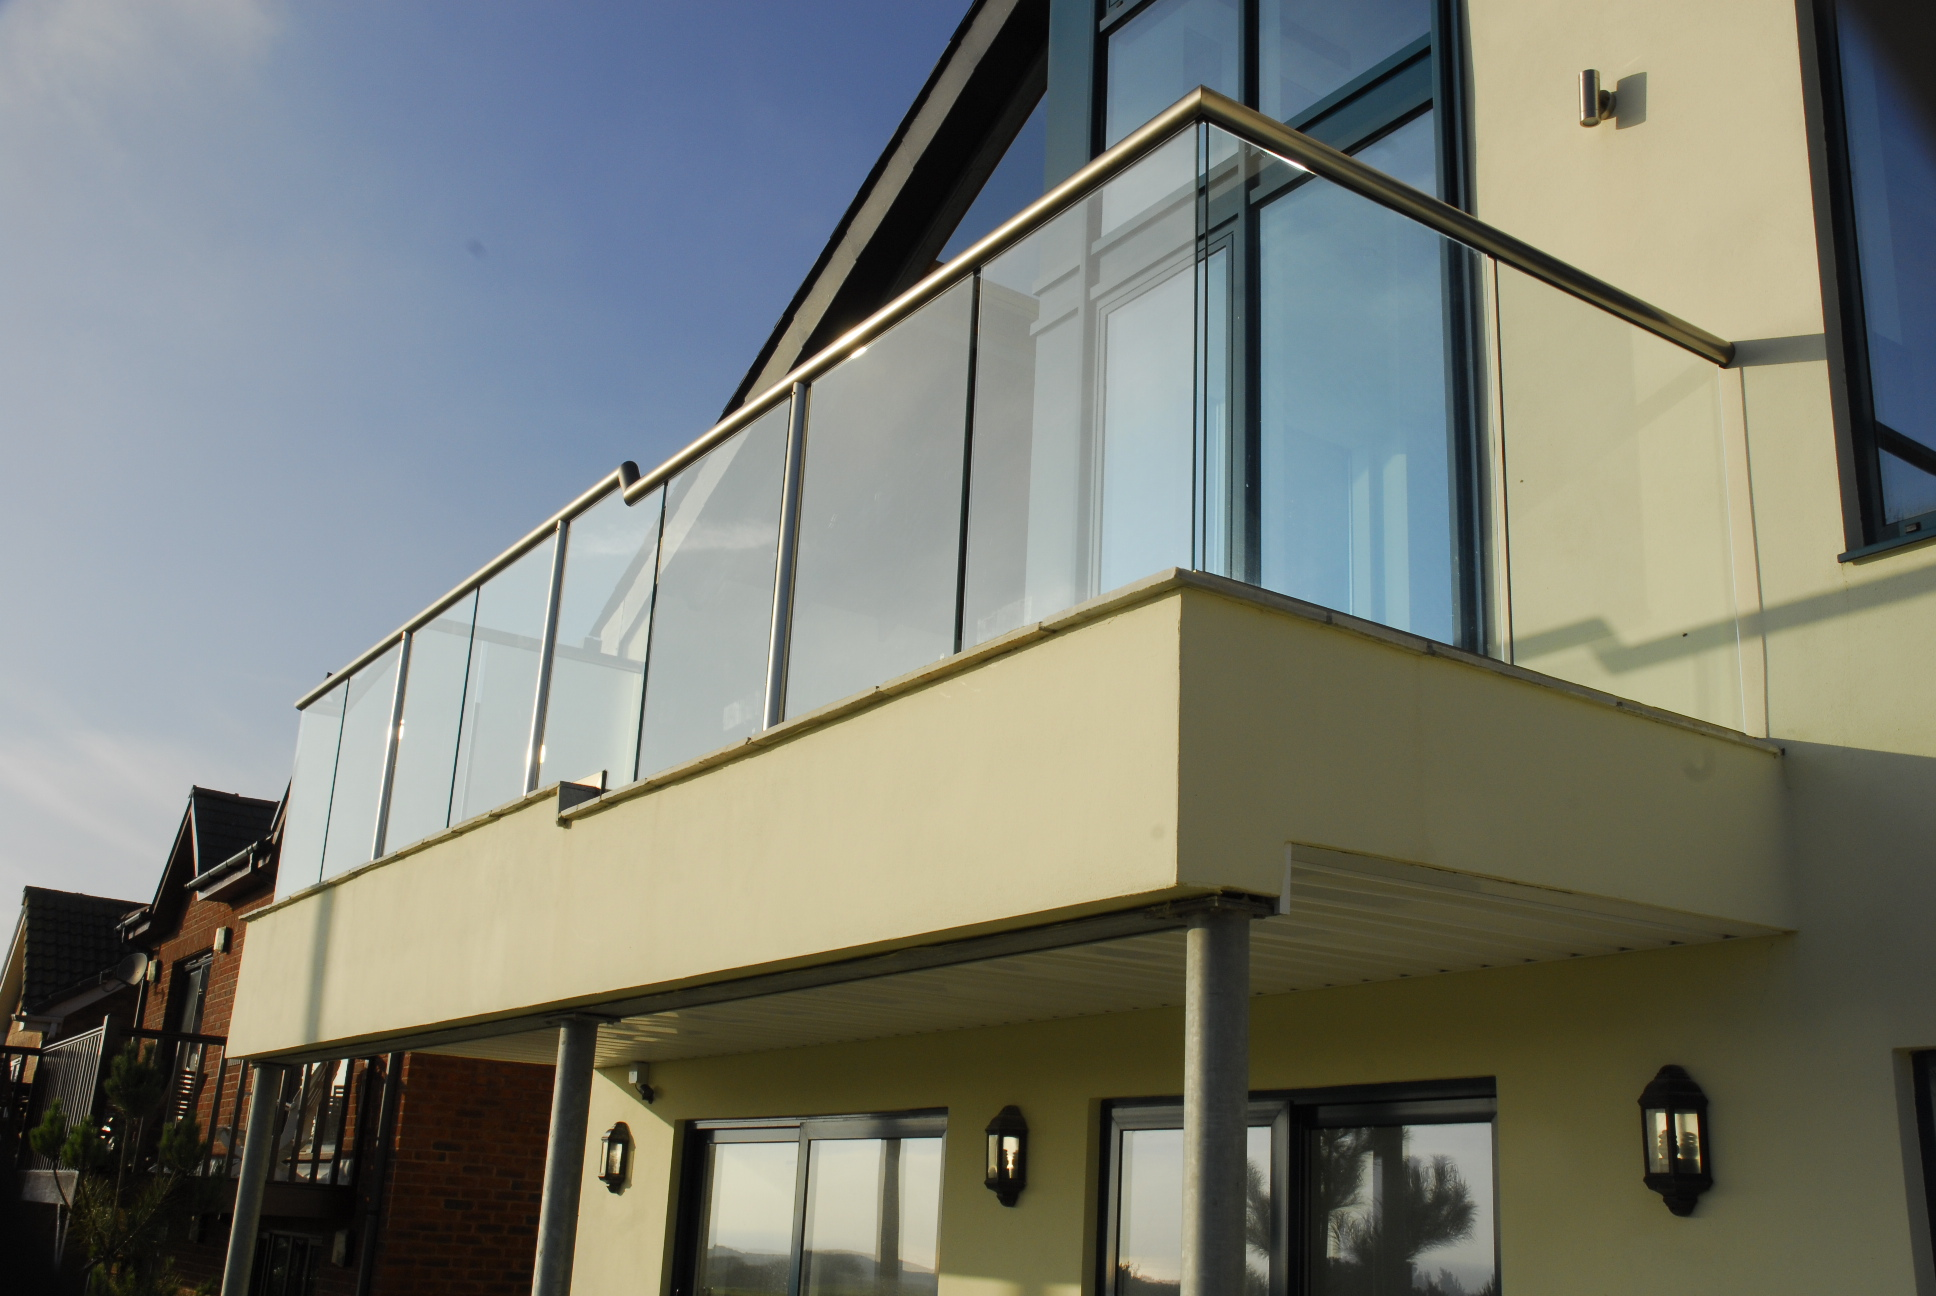 Balcony Balustrades Balcony Railings Glass Balcony Glass Balustrades